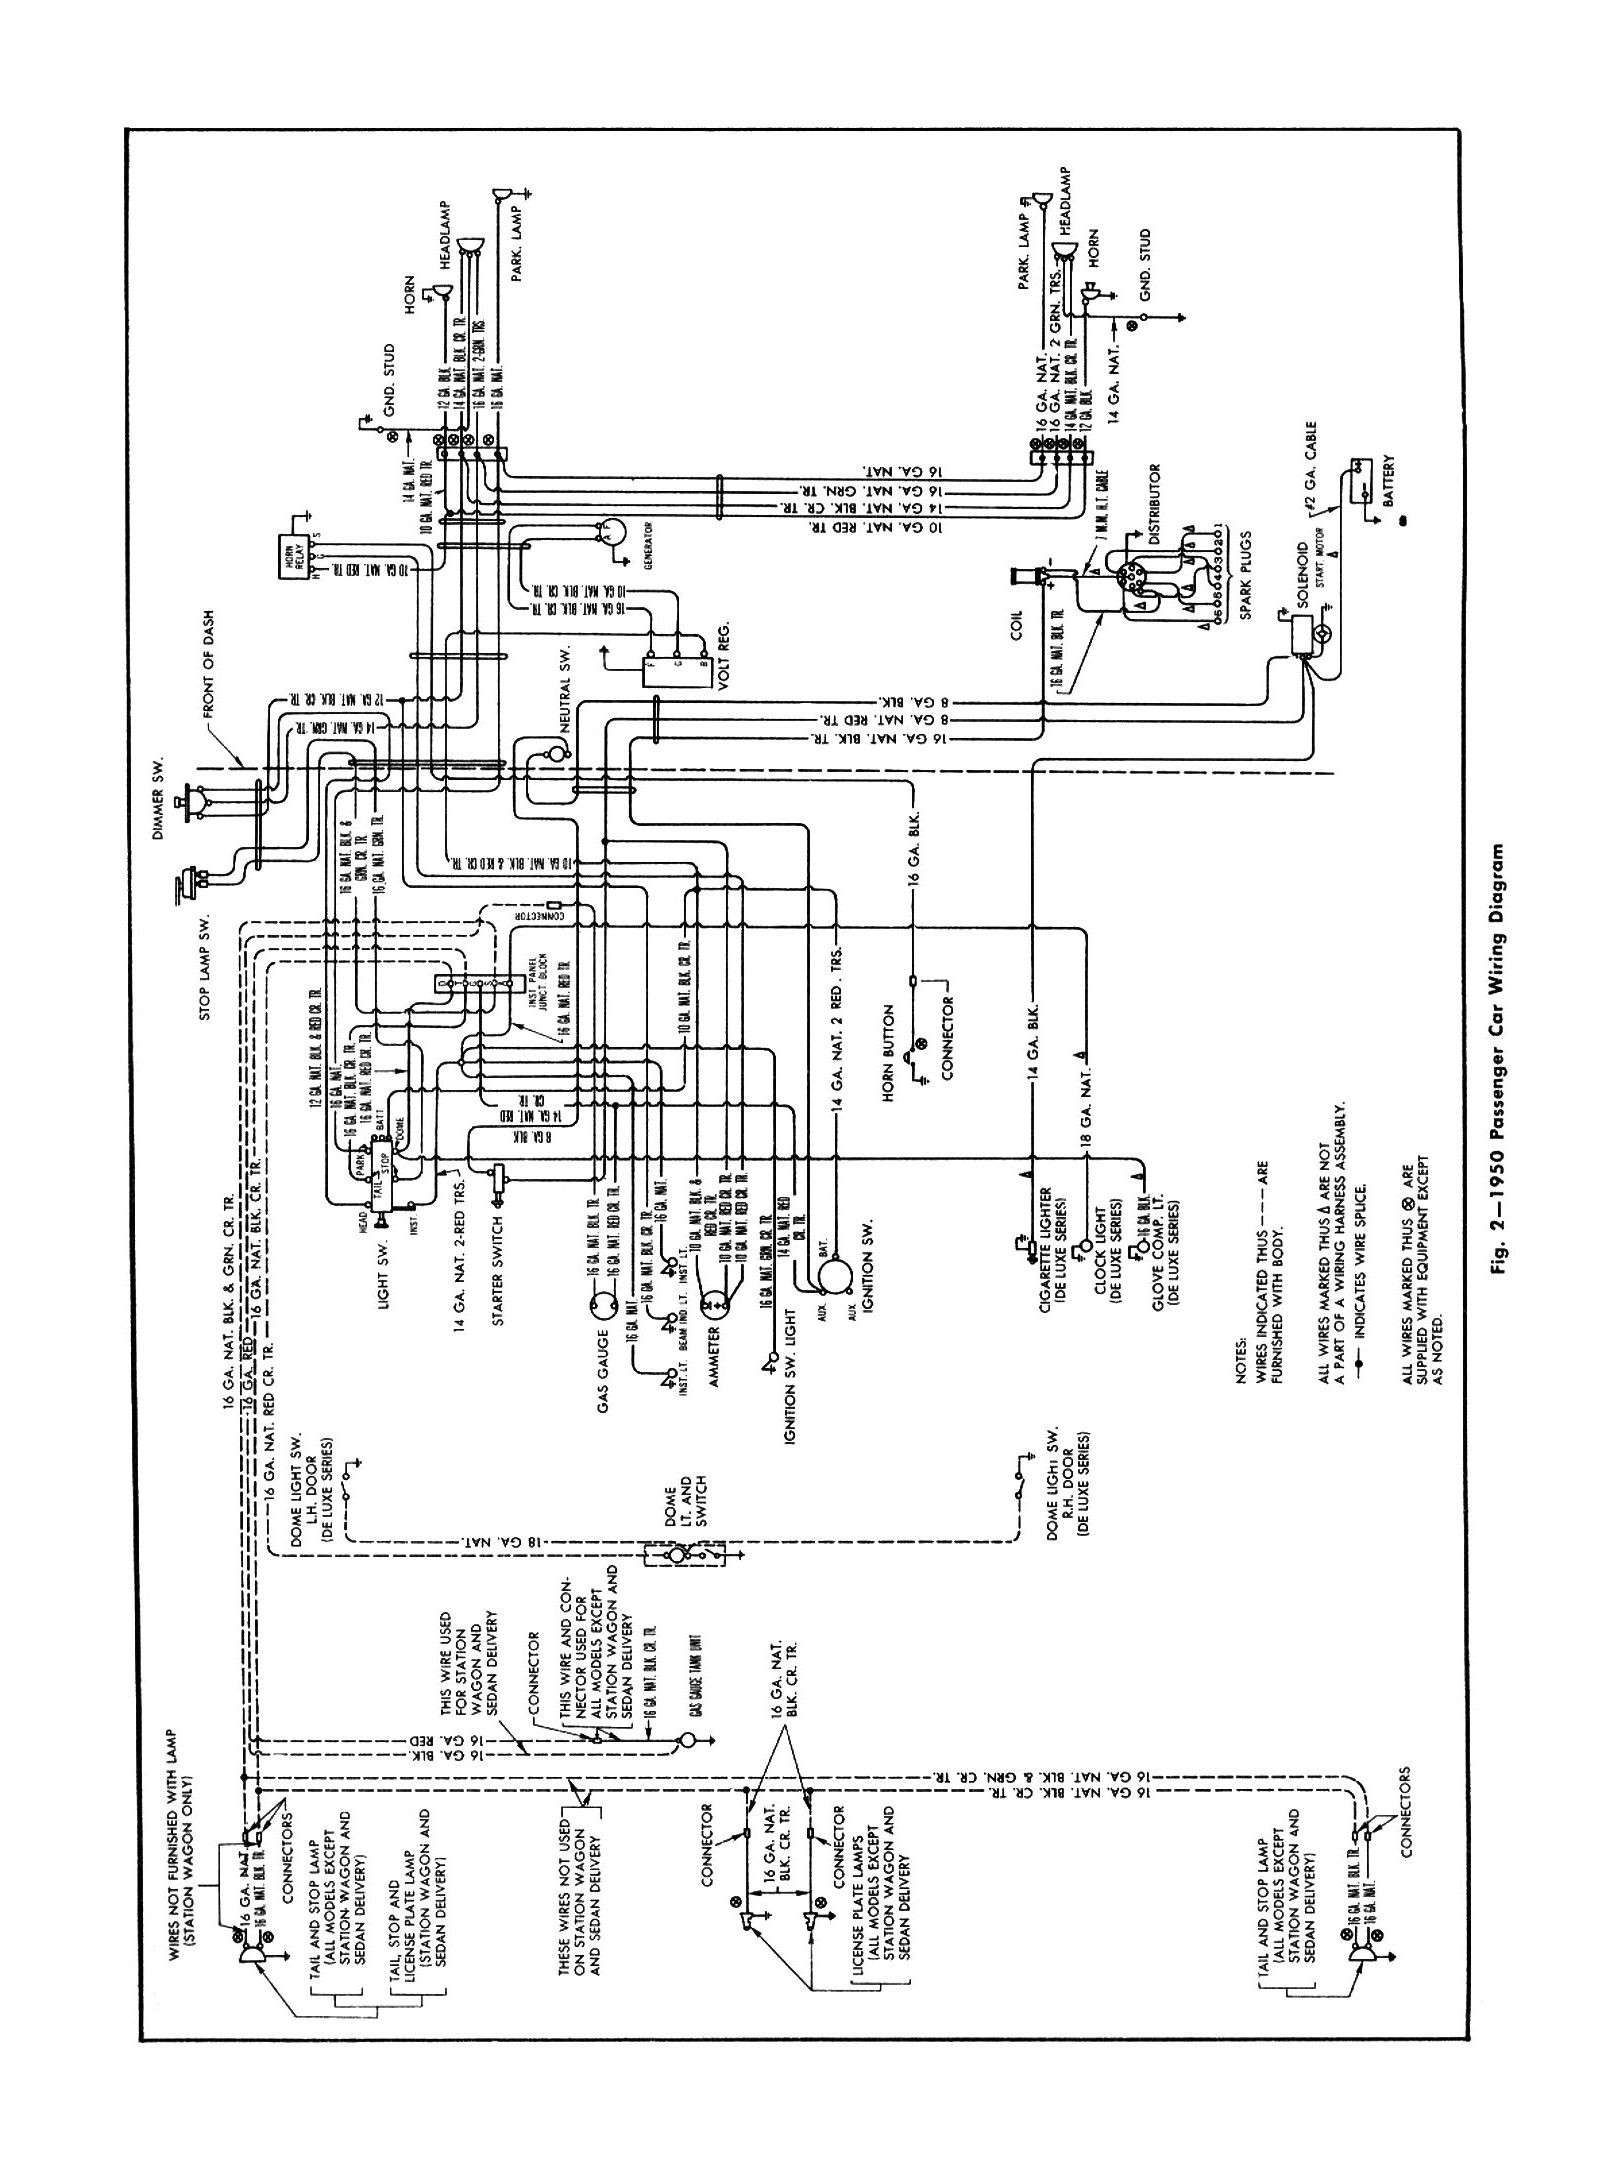 Wiring Diagram Cars Trucks Wiring Diagram Cars Trucks Truck Horn Wiring Wiring Diagrams Electrical Wiring Diagram Diagram Trailer Wiring Diagram